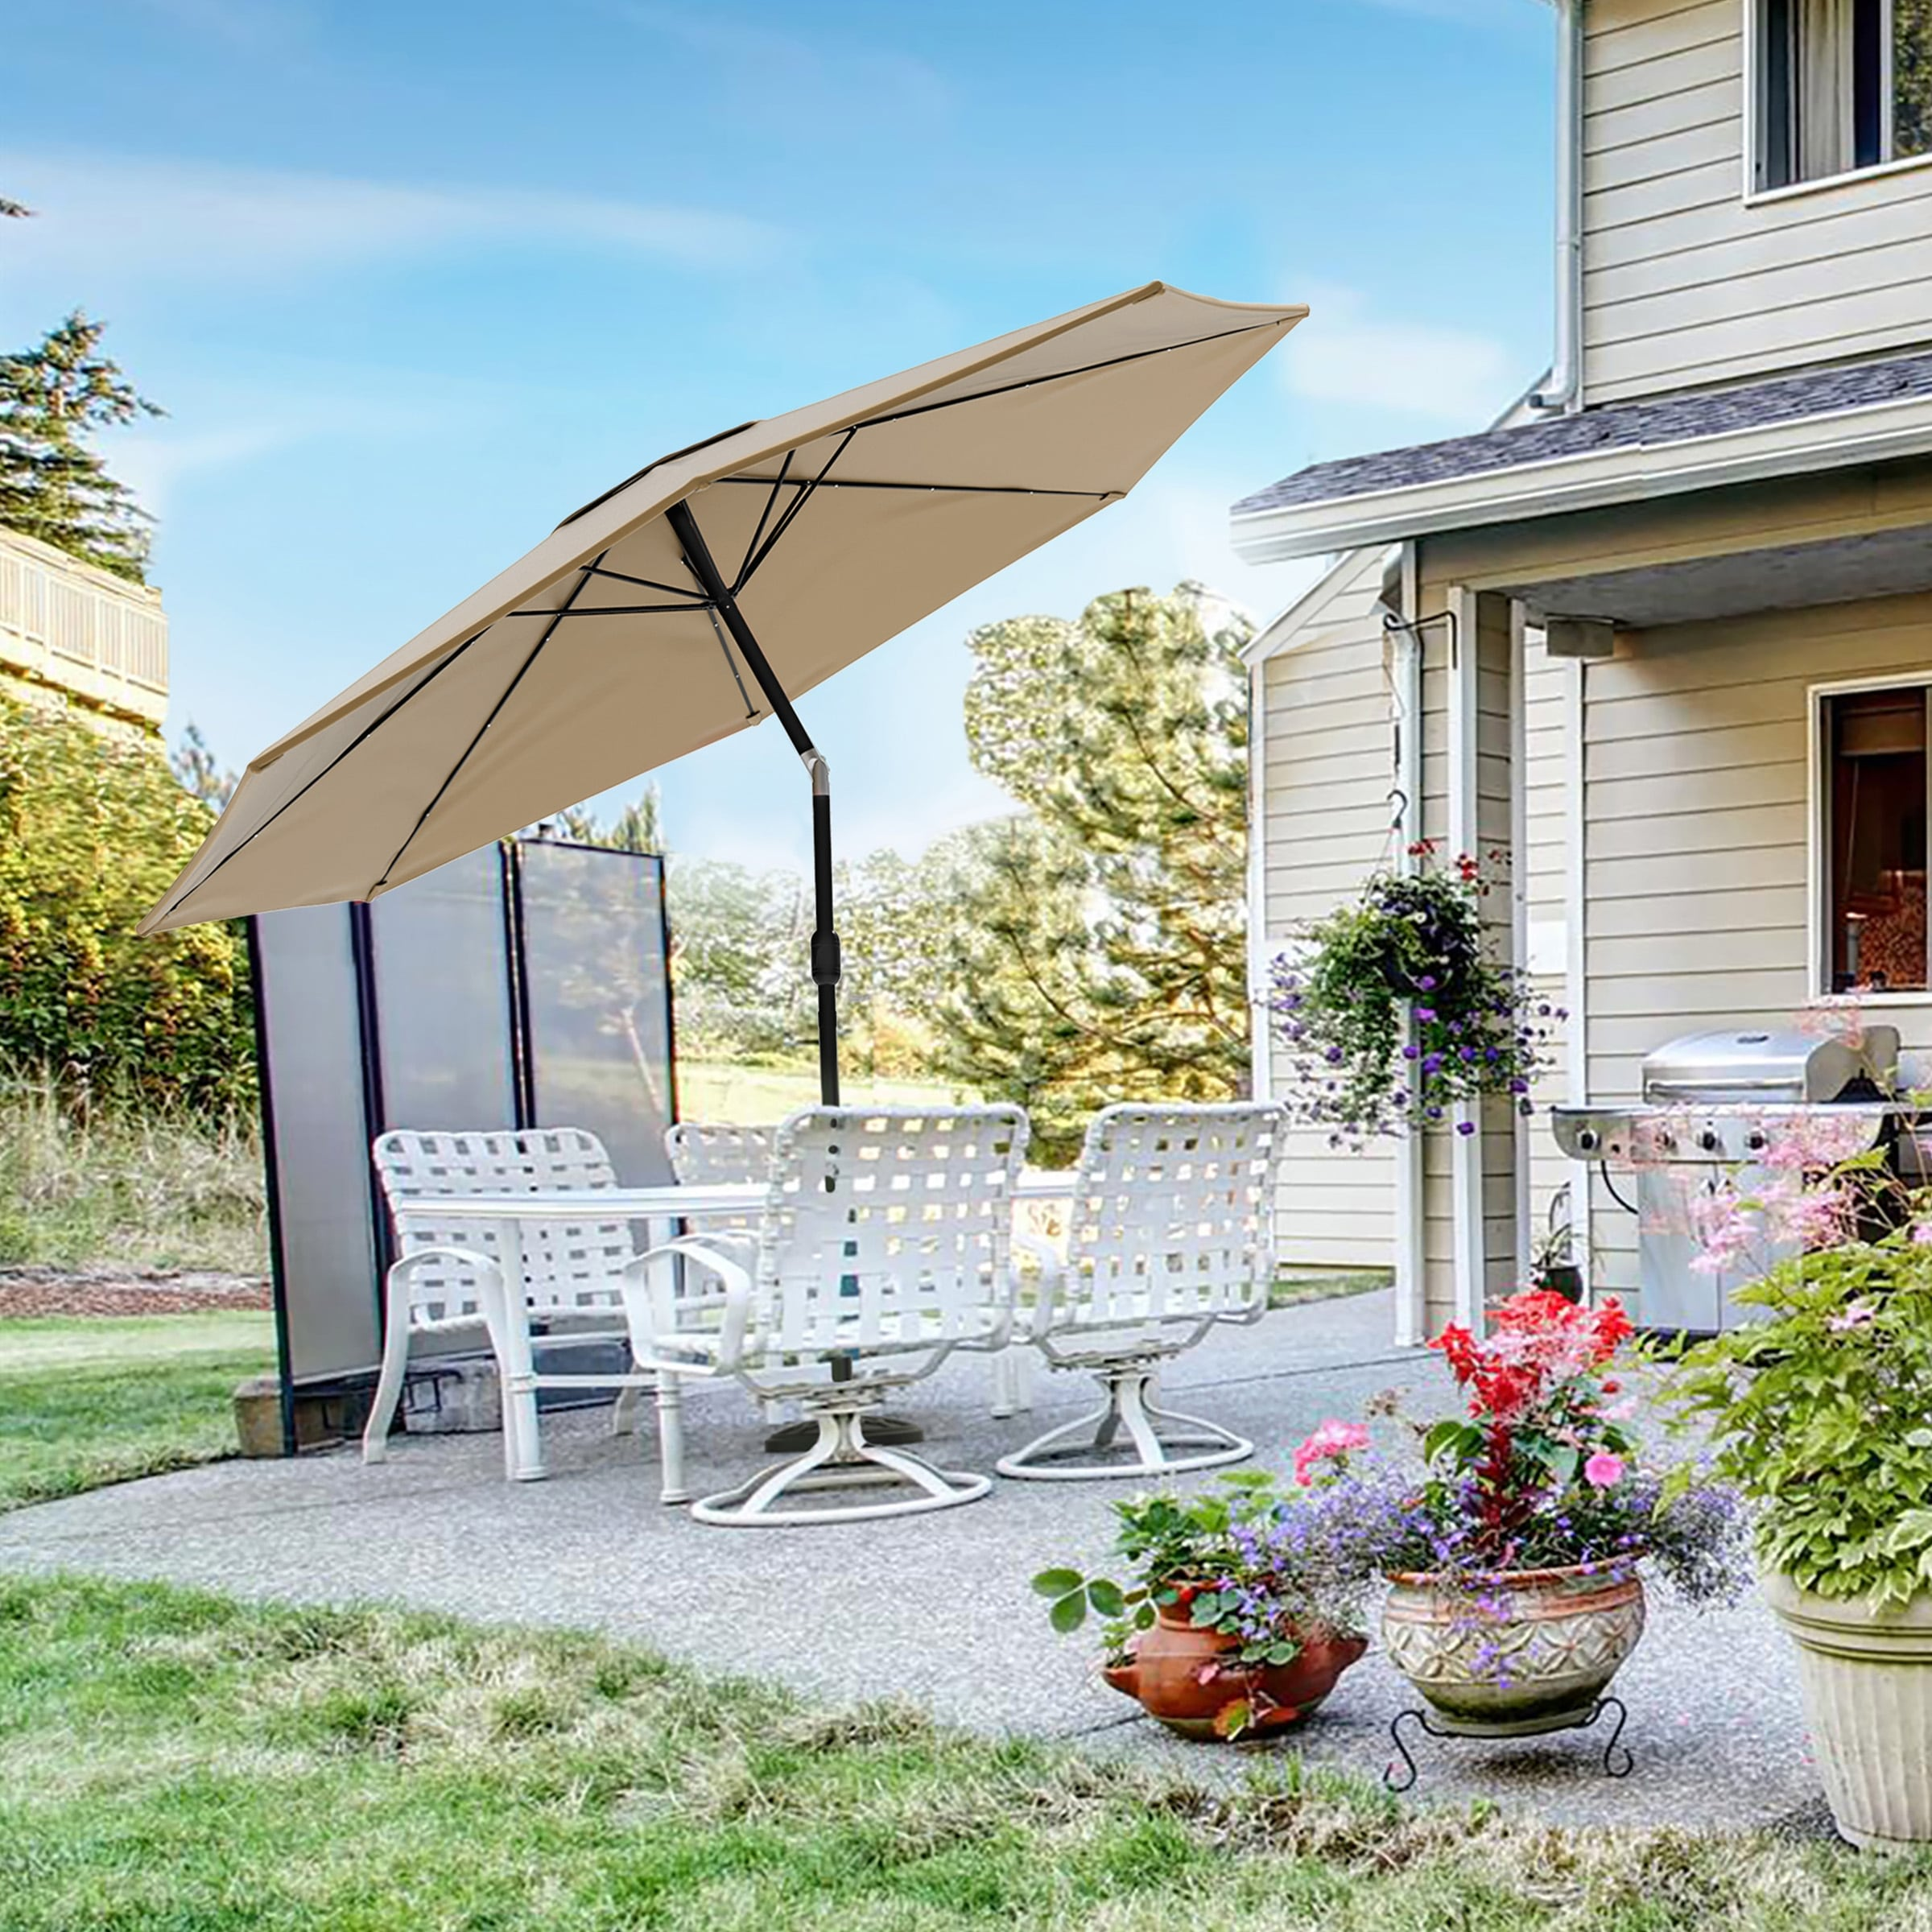 boynton 10 foot patio umbrella with solar powered led lights by havenside home